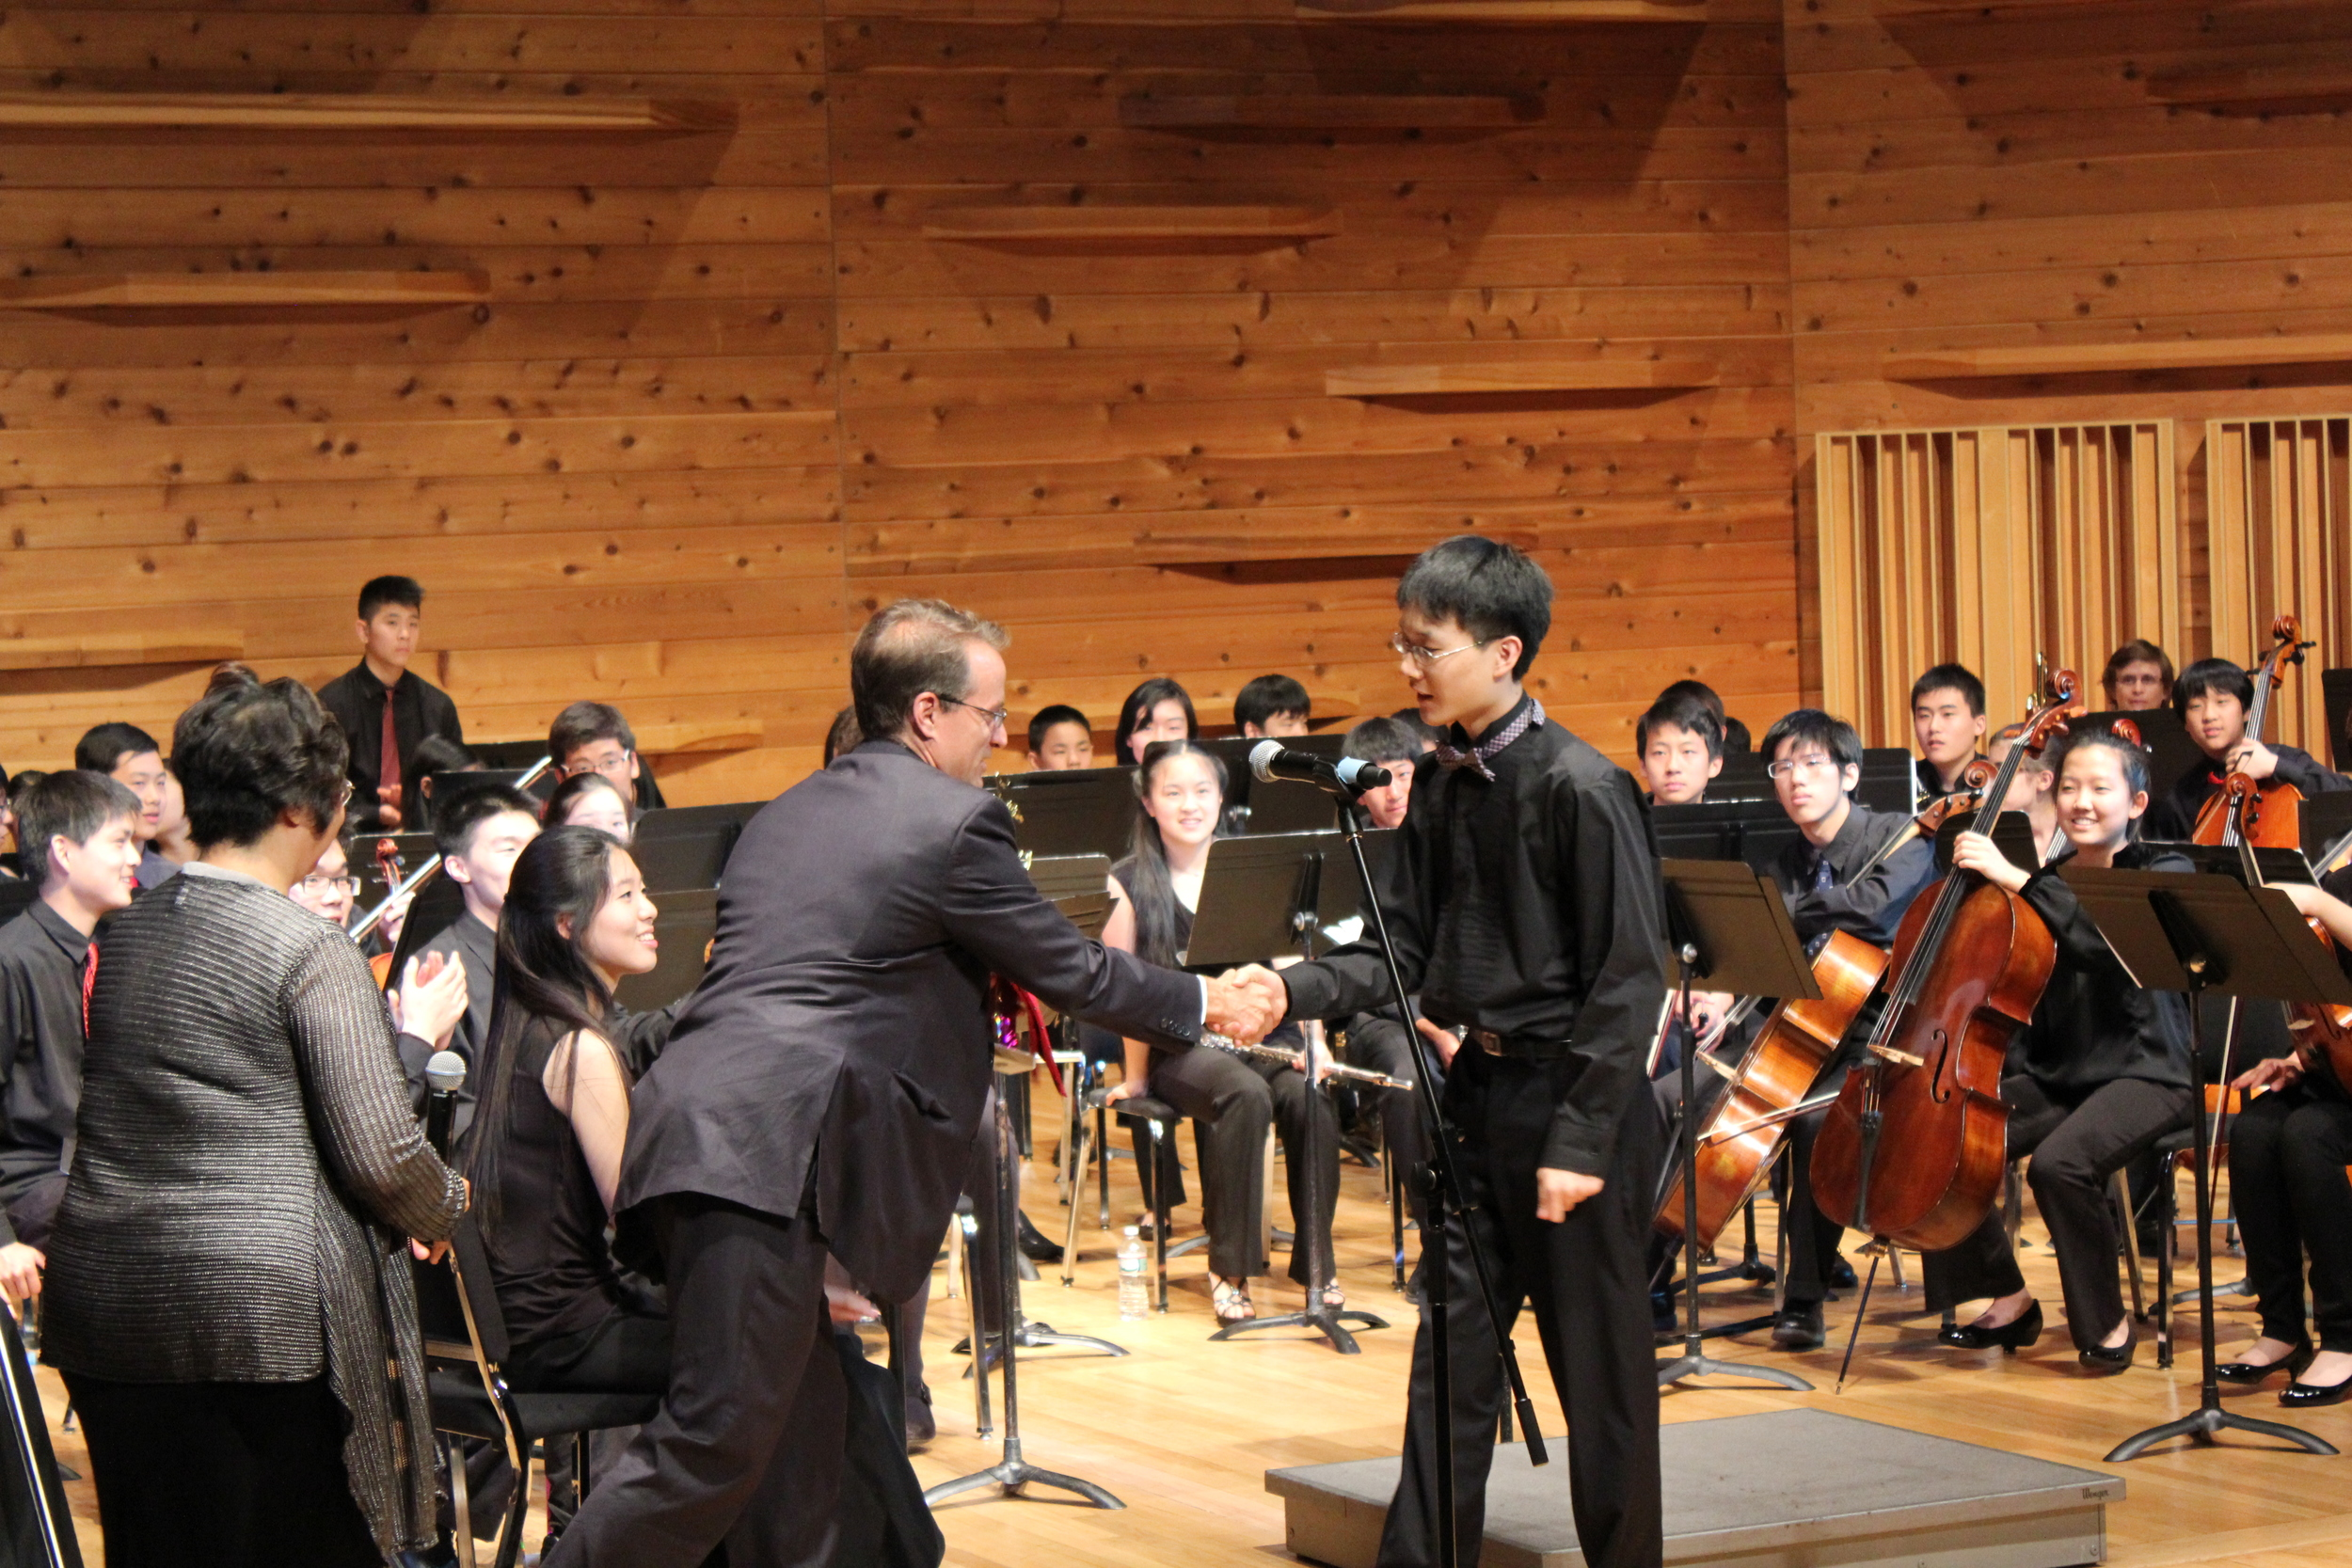 Rutgers Extension Divisi  on division director,Christopher Kenniff presenting award to cellist Patrick Kim